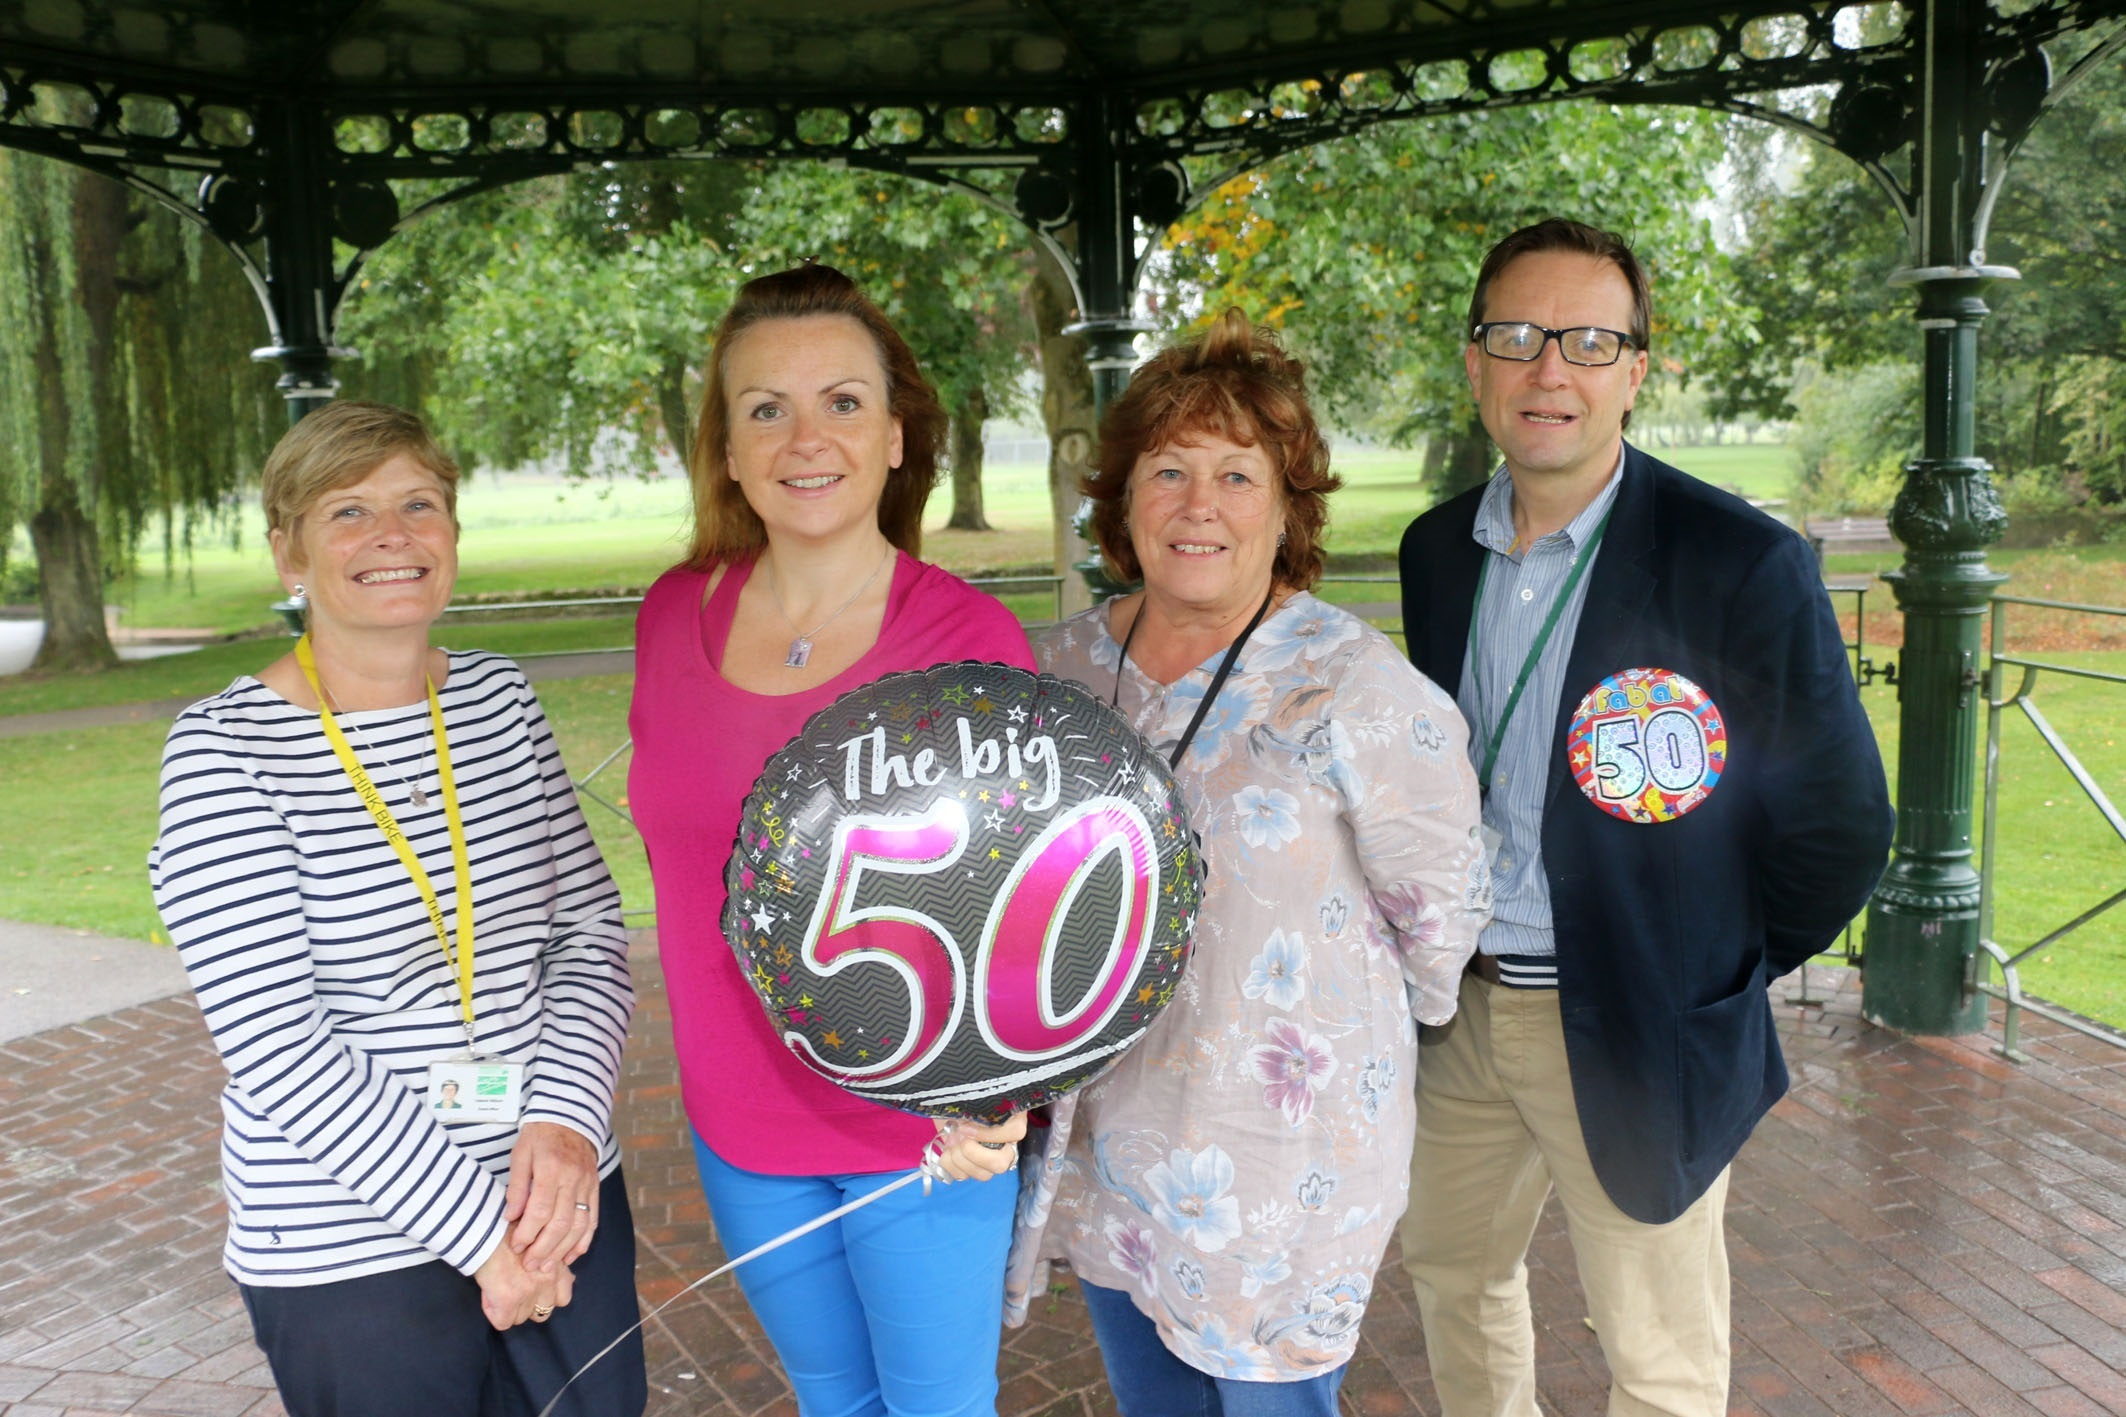 Events officer Val Wilson, Bromsgrove Society's Jo Slade, events assistant June Carmichael and arts development officer Huw Moseley